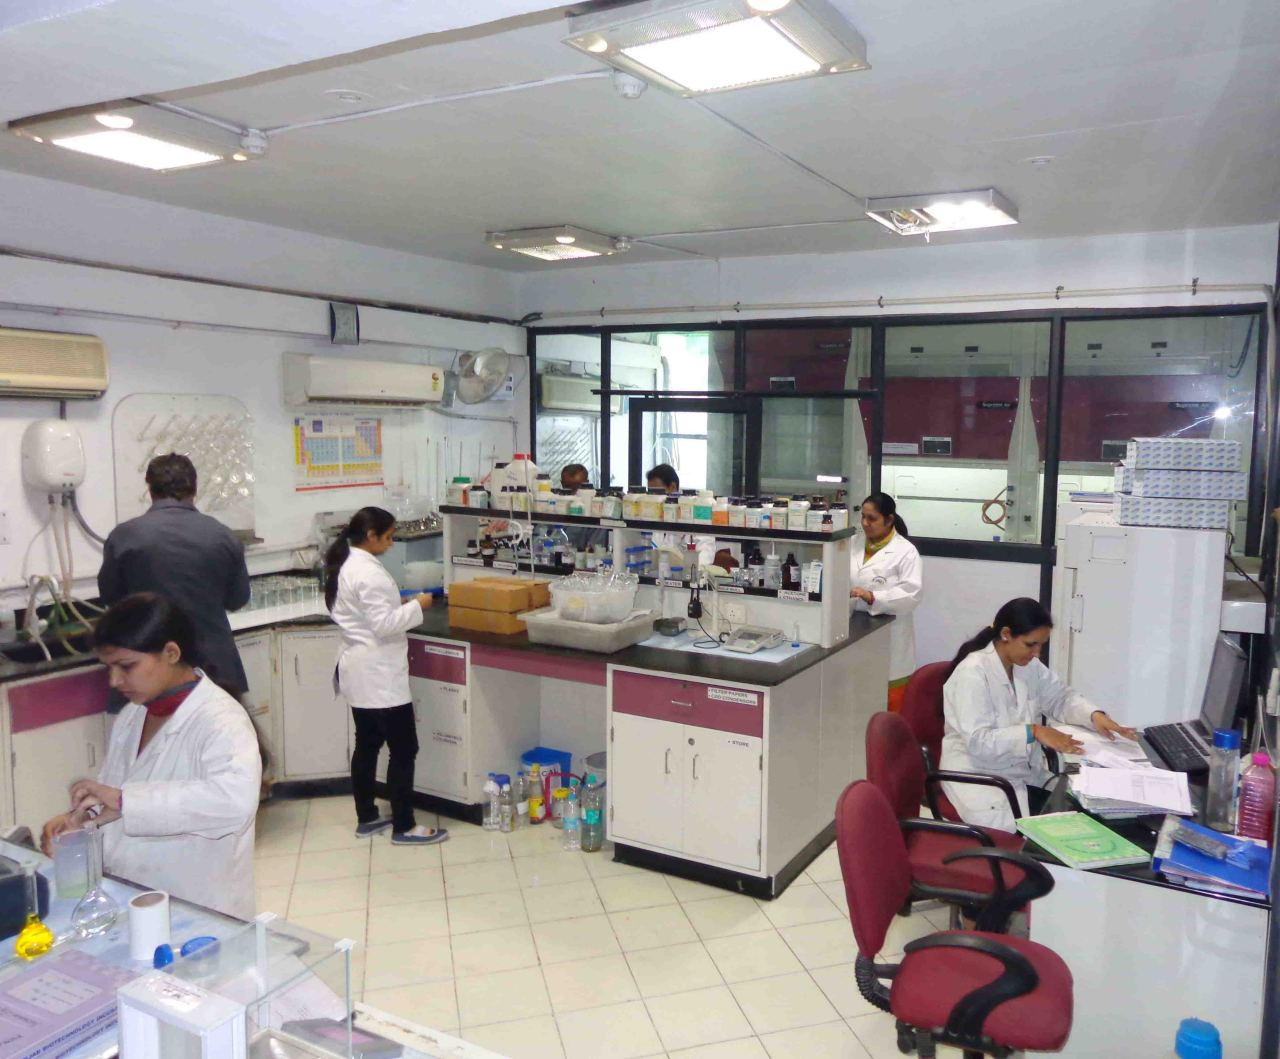 """Advancing with Bio-technology IncubatorDepartment of Biotechnology (DBT), Govt. of India (GOI) and Govt. of Punjab (GOP) in the year 2005, keeping in view the contribution of northern region in general and Punjab in particular in producing and meeting the food requirement of growing population of the country, sanctioned the setting up of """"Biotechnology Incubator in Punjab Biotechnology Park"""" with Quality Testing & Certification Facility as one of the services. Punjab Biotechnology Incubator (PBTI) has come up with its state-of-the- art Agri& Food Testing Laboratory, which is set up at SAS Nagar (Mohali), the hub of Biotechnology and Information Technology in Punjab. PBTI is a State Govt. Undertaking registered as a 'Society for Biotechnology Incubator' under the Society Registration Act 1961 and is professionally governed by Governing Council of the Society under the chairmanship of Chief Secretary. The day to day affairs are managed by Chief Executive Officer, supported by technical professionals of high calibre.The vision is to provide the most competitive state-of-the-art Quality Testing and R&D services to add value to user's products & processes and support their success in global market by providing technically valid and reliable test data with high degree of credibility. The laboratory aims to assist the industry and society at large so as to impart a change in the outlook of people to uncompromising quality consciousness.PBTI's strength has been its dedicated, scientific/technical staff of high calibre. PBTI is governed by the Governing Council headed by Chief Secretary to Govt. of Punjab and also comprising knowledgeable, experienced & eminent experts from academic institutions, industries and relevant State and Central Govt. Departments. The laboratory is equipped with sophisticated, high-end, and latest equipment to cover all agricultural and related.Punjab Biotechnology Incubator (PBTI) has the authority of the following:1-Quality Testing and Certificati"""